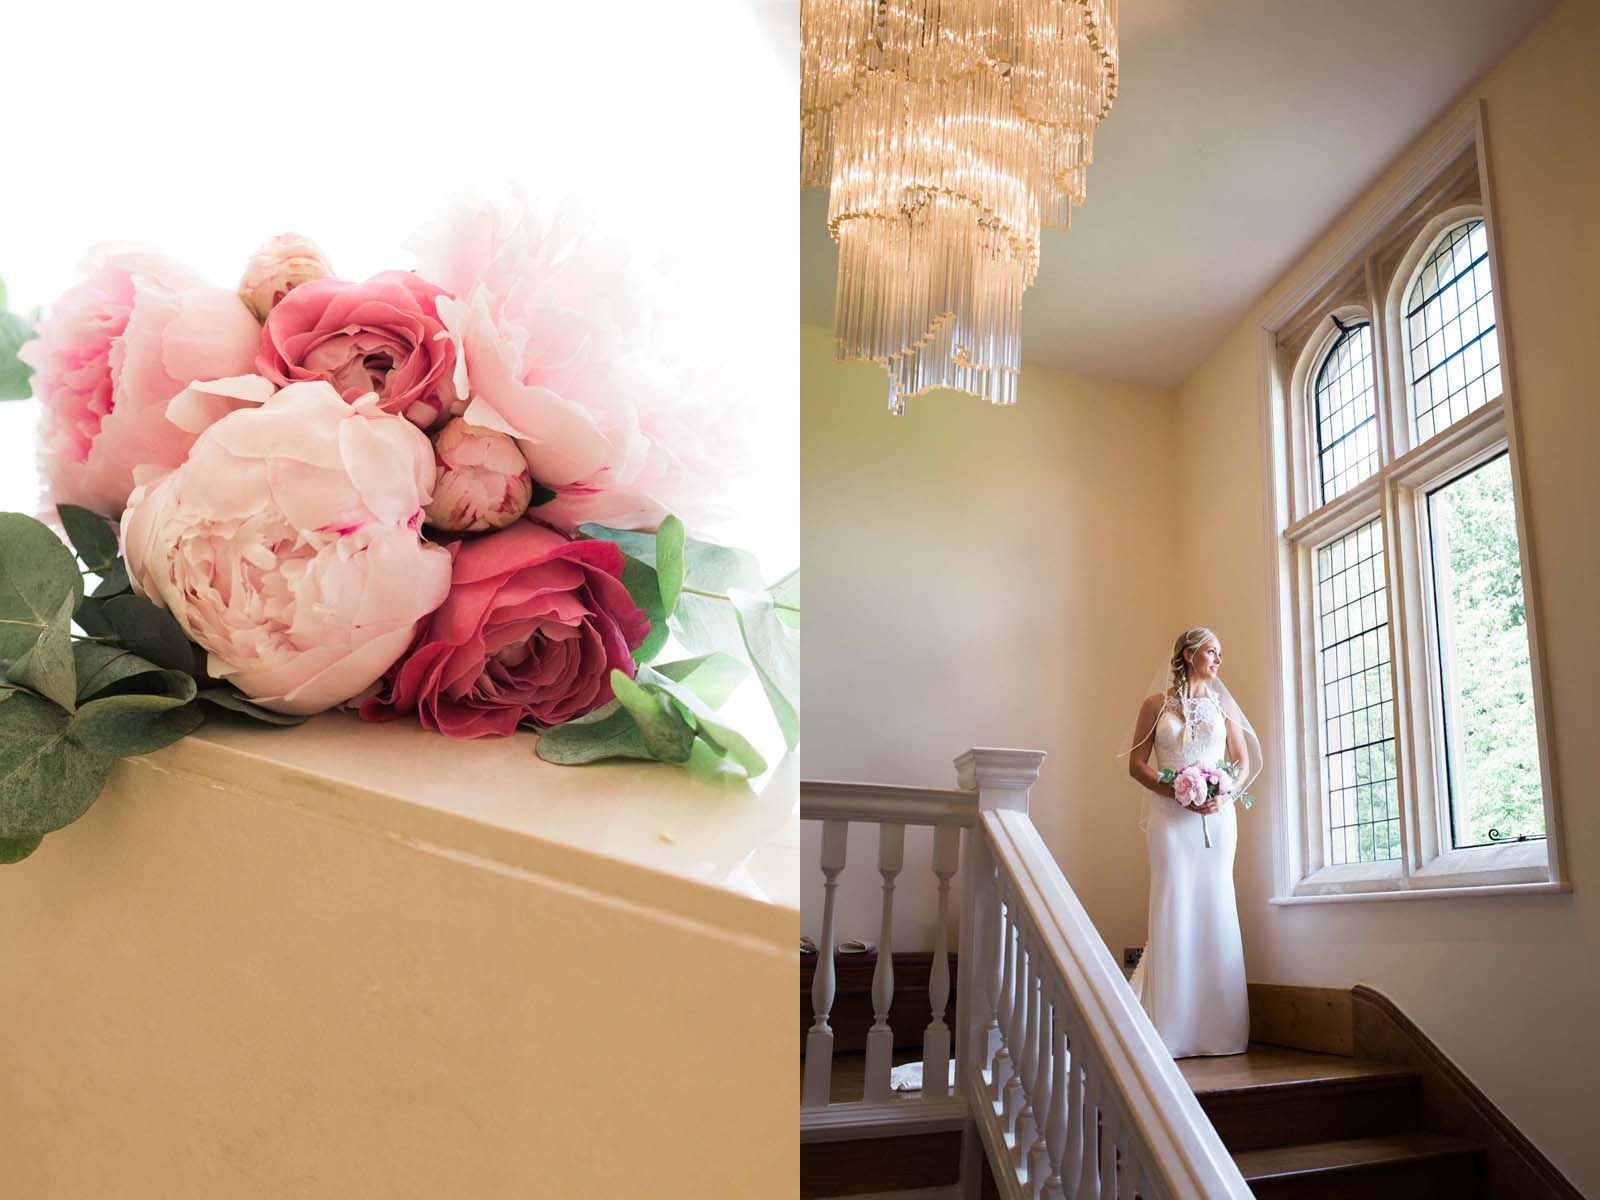 Notley Abbey wedding in Buckinghamshire - bride and bouquet